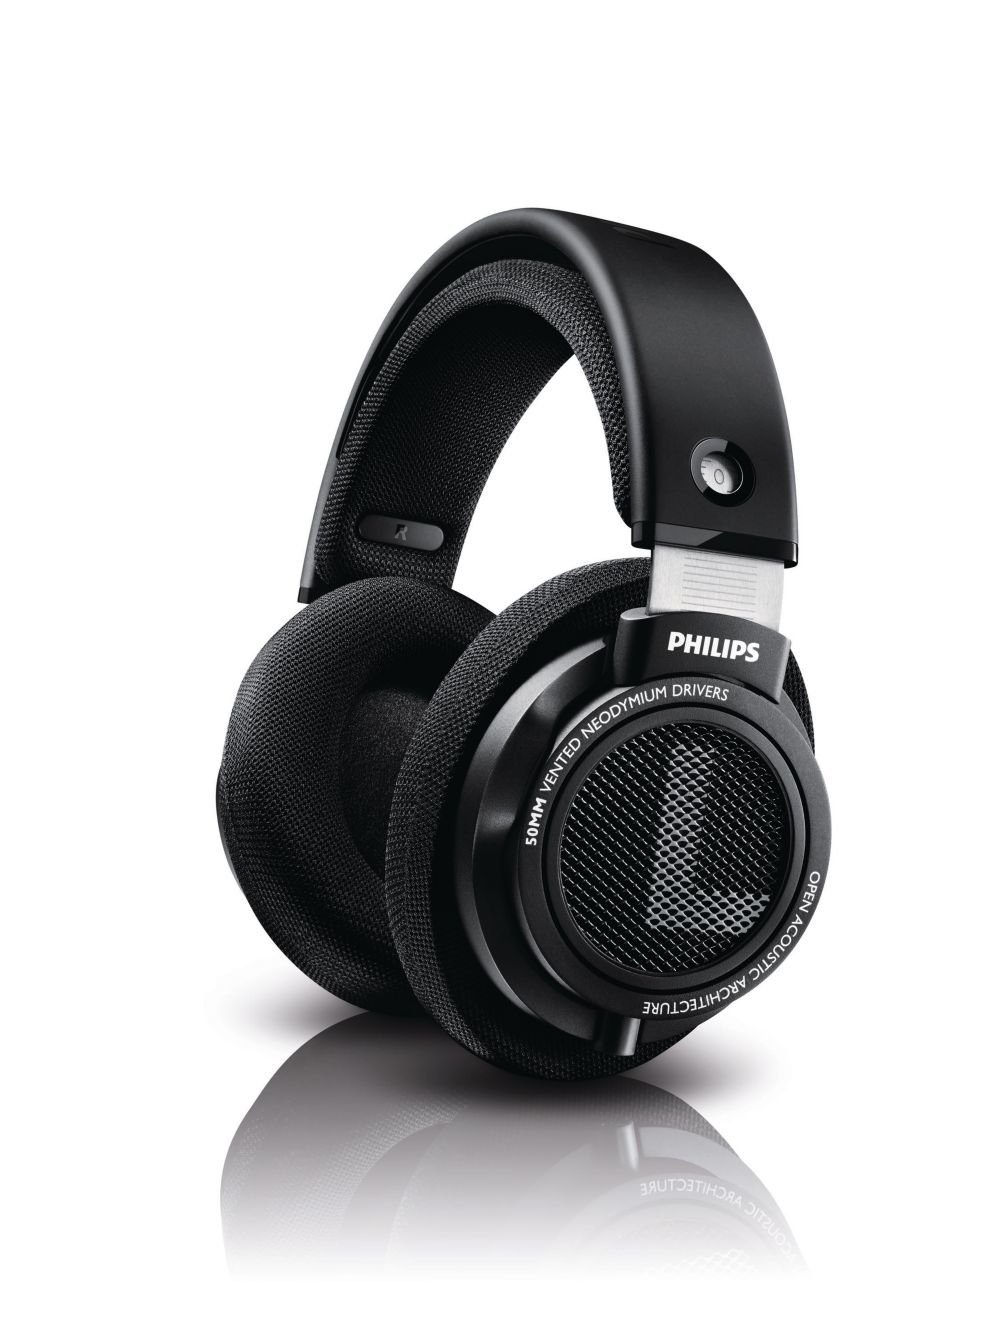 Philips SHP9500 HiFi Precision Stereo Over-Ear Headphones (Black) by Philips Audio